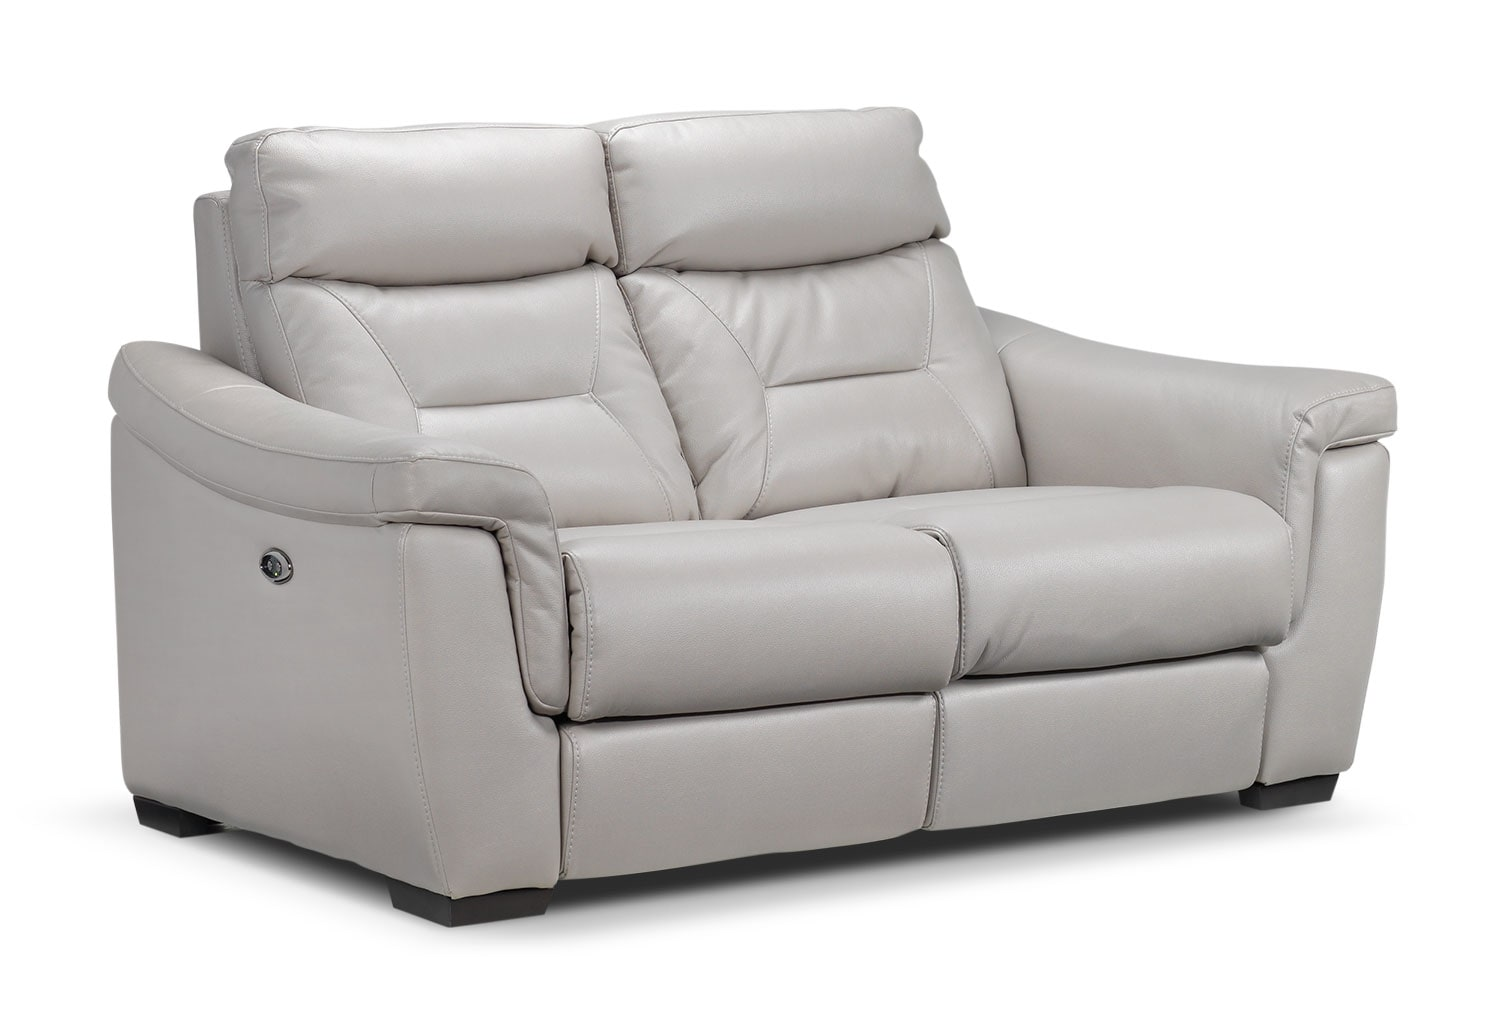 Ralston Power Reclining Loveseat - Silver-Grey